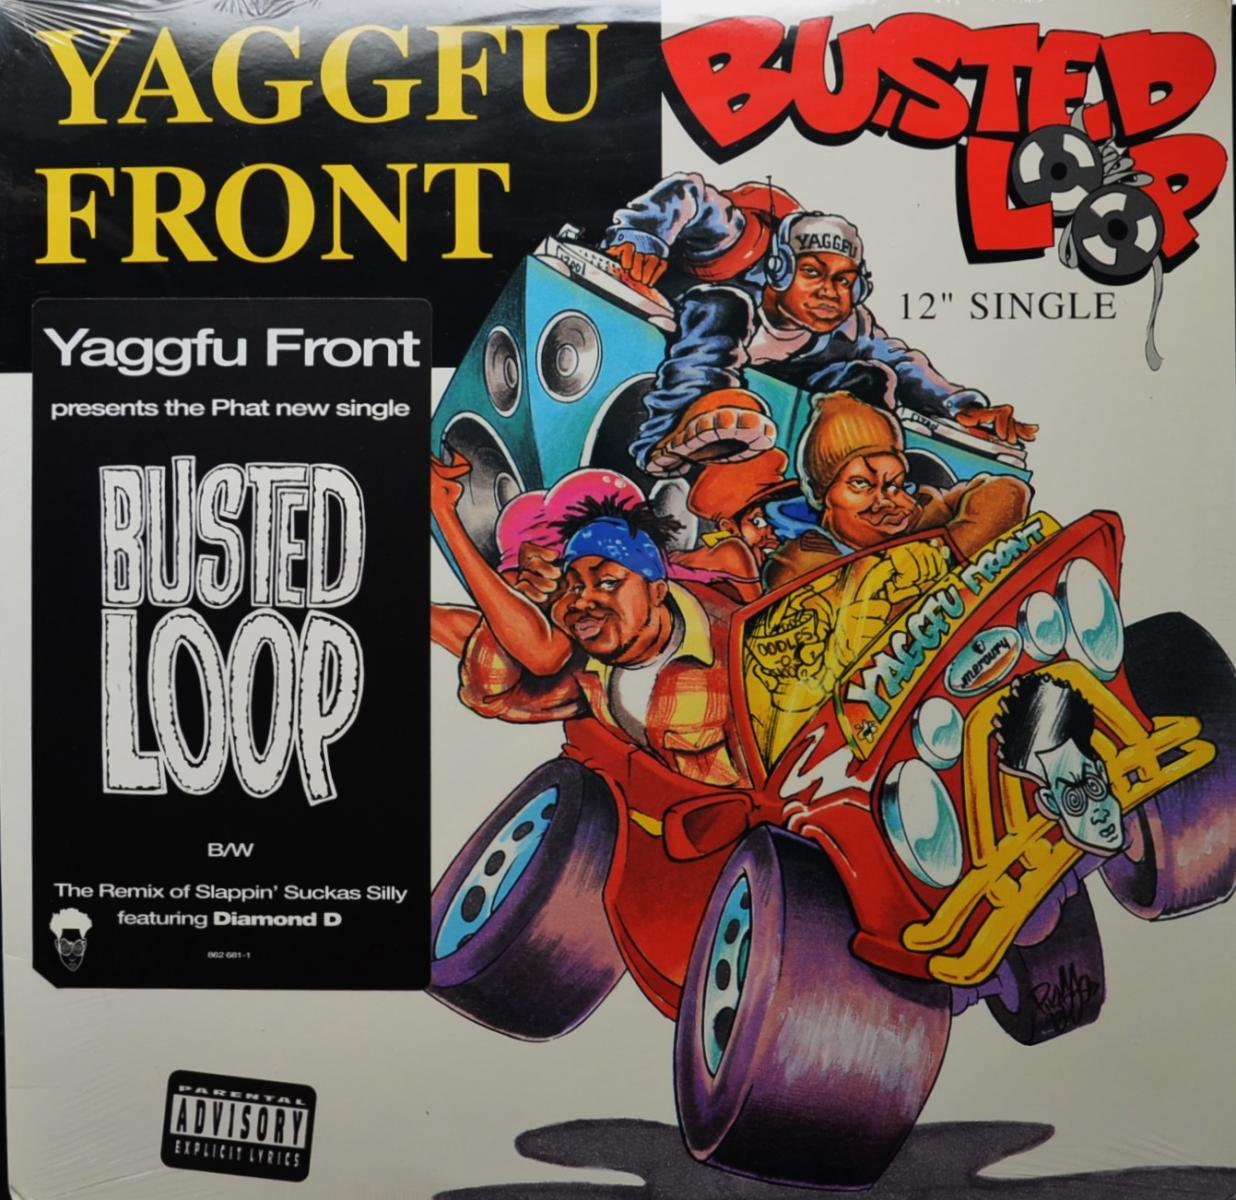 YAGGFU FRONT / BUSTED LOOP (12